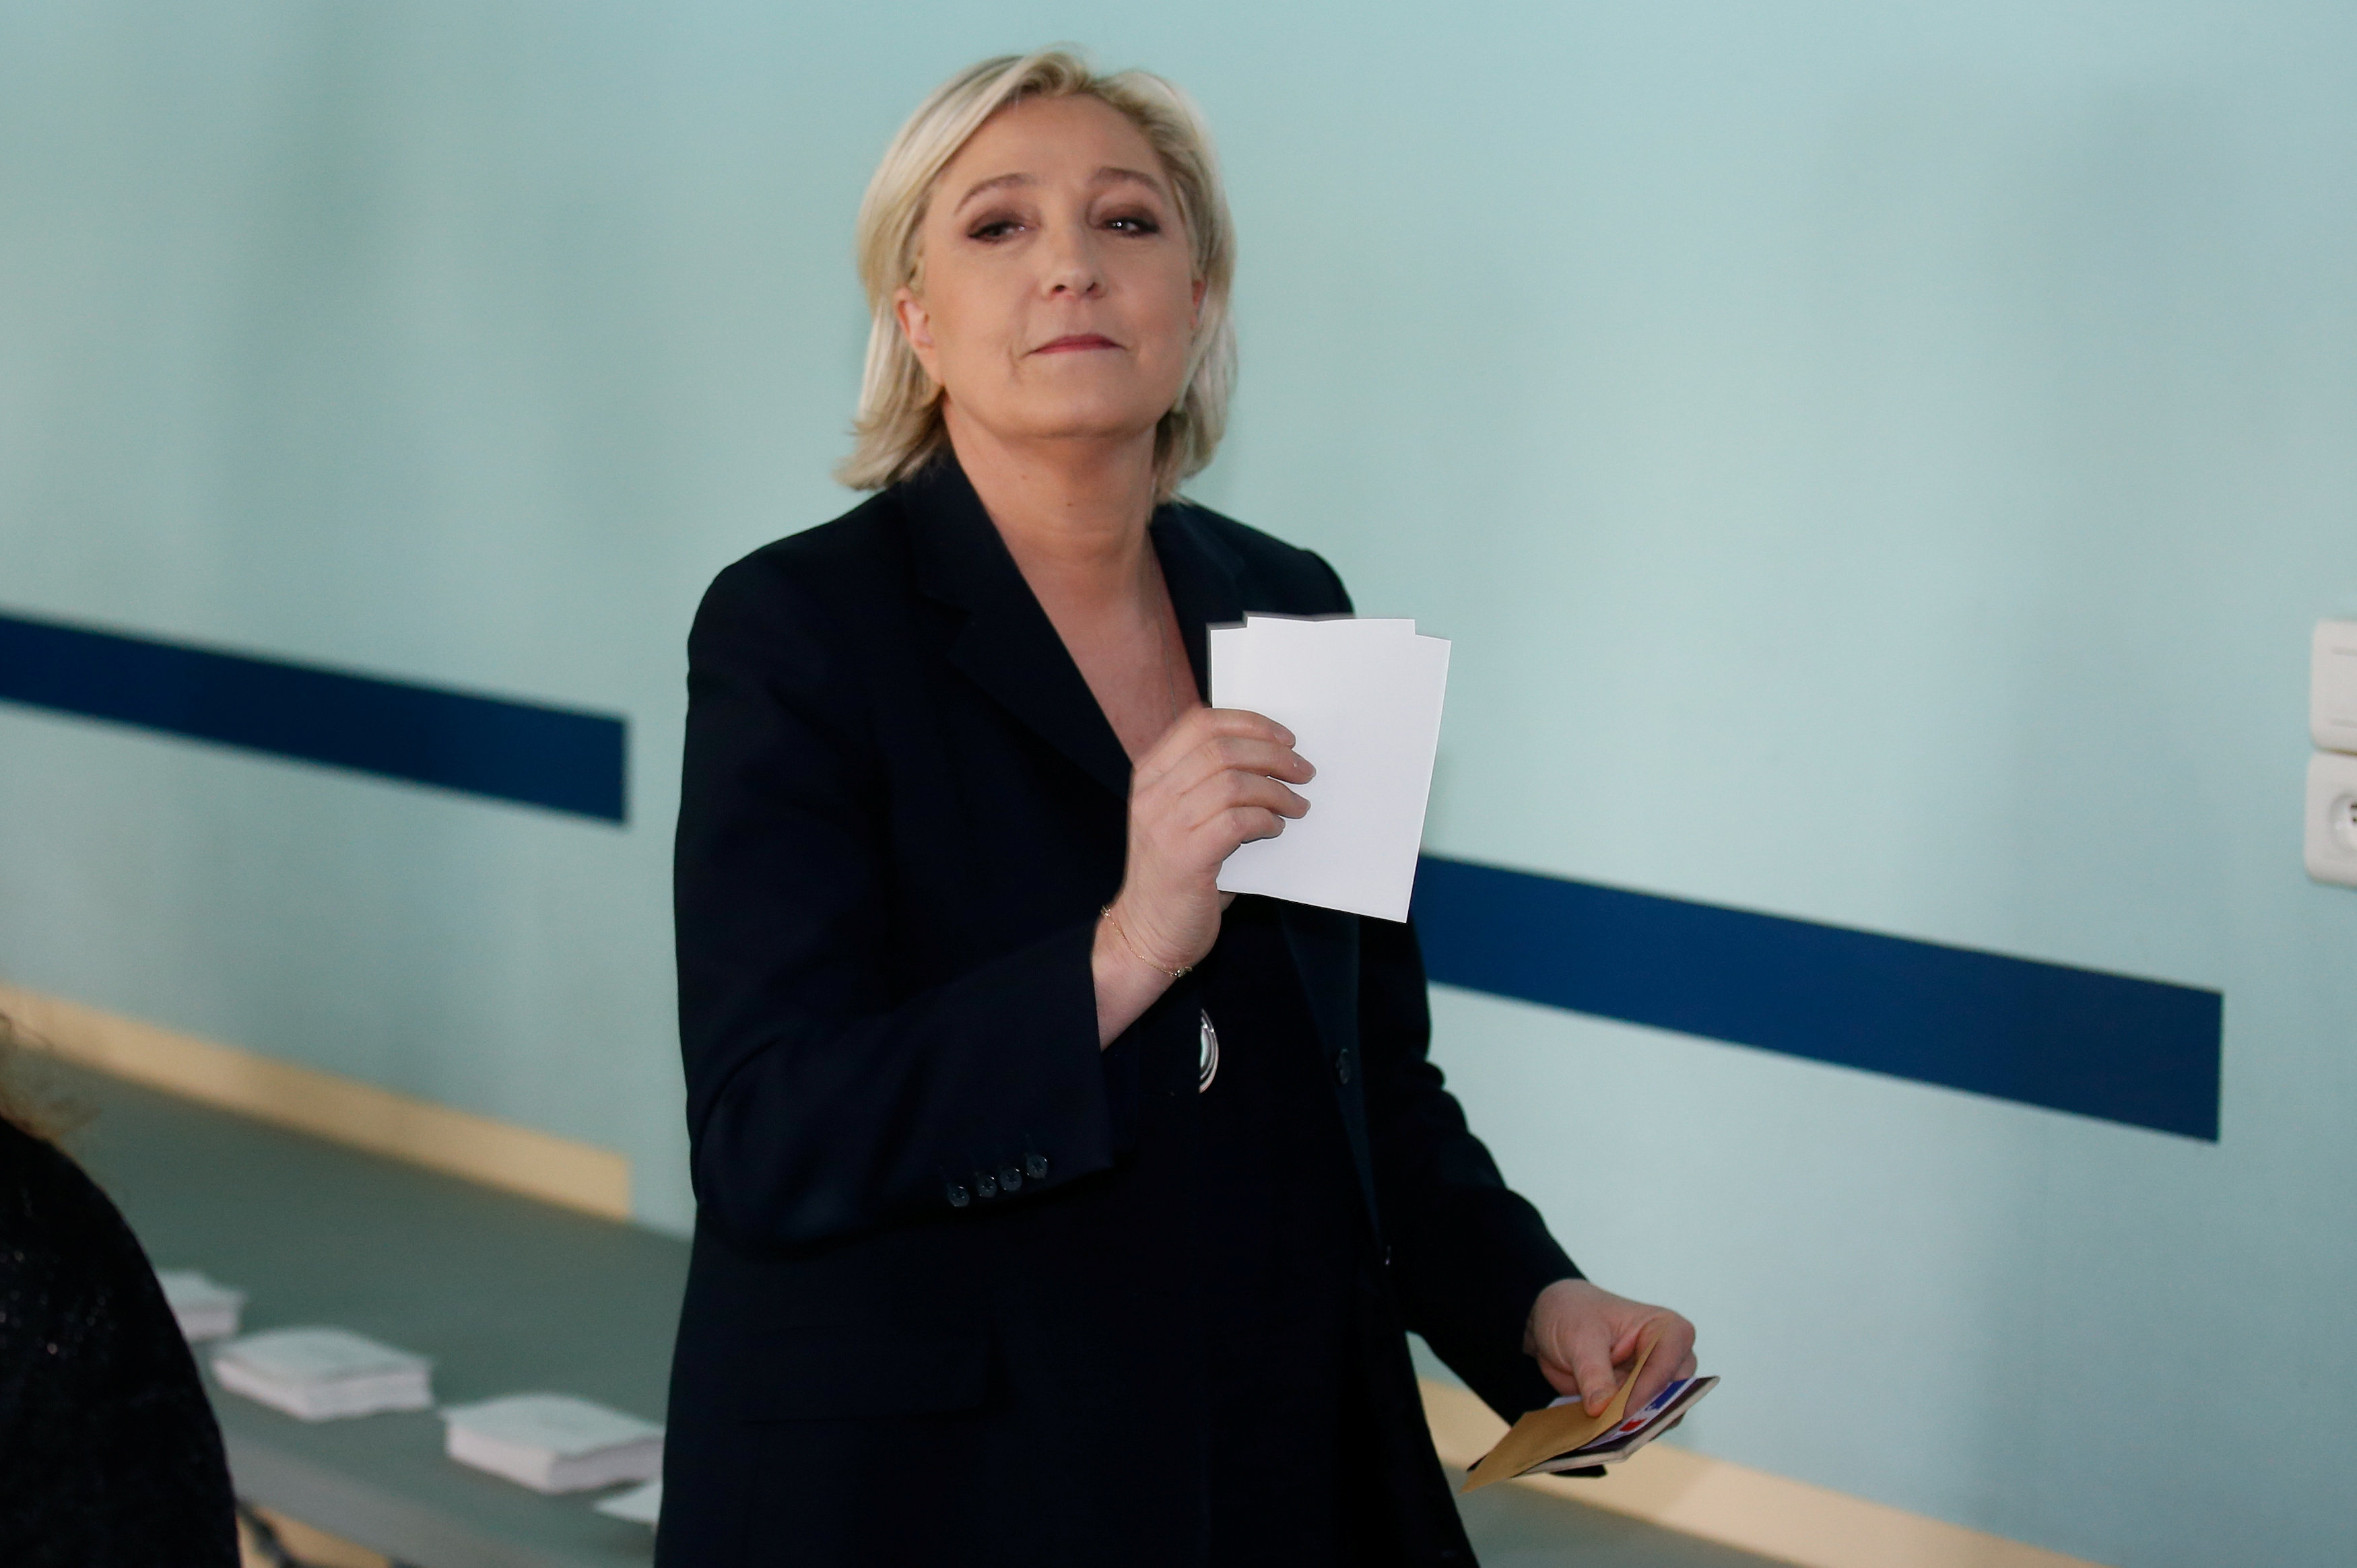 Projections say Macron, Le Pen go through to runoff in French vote